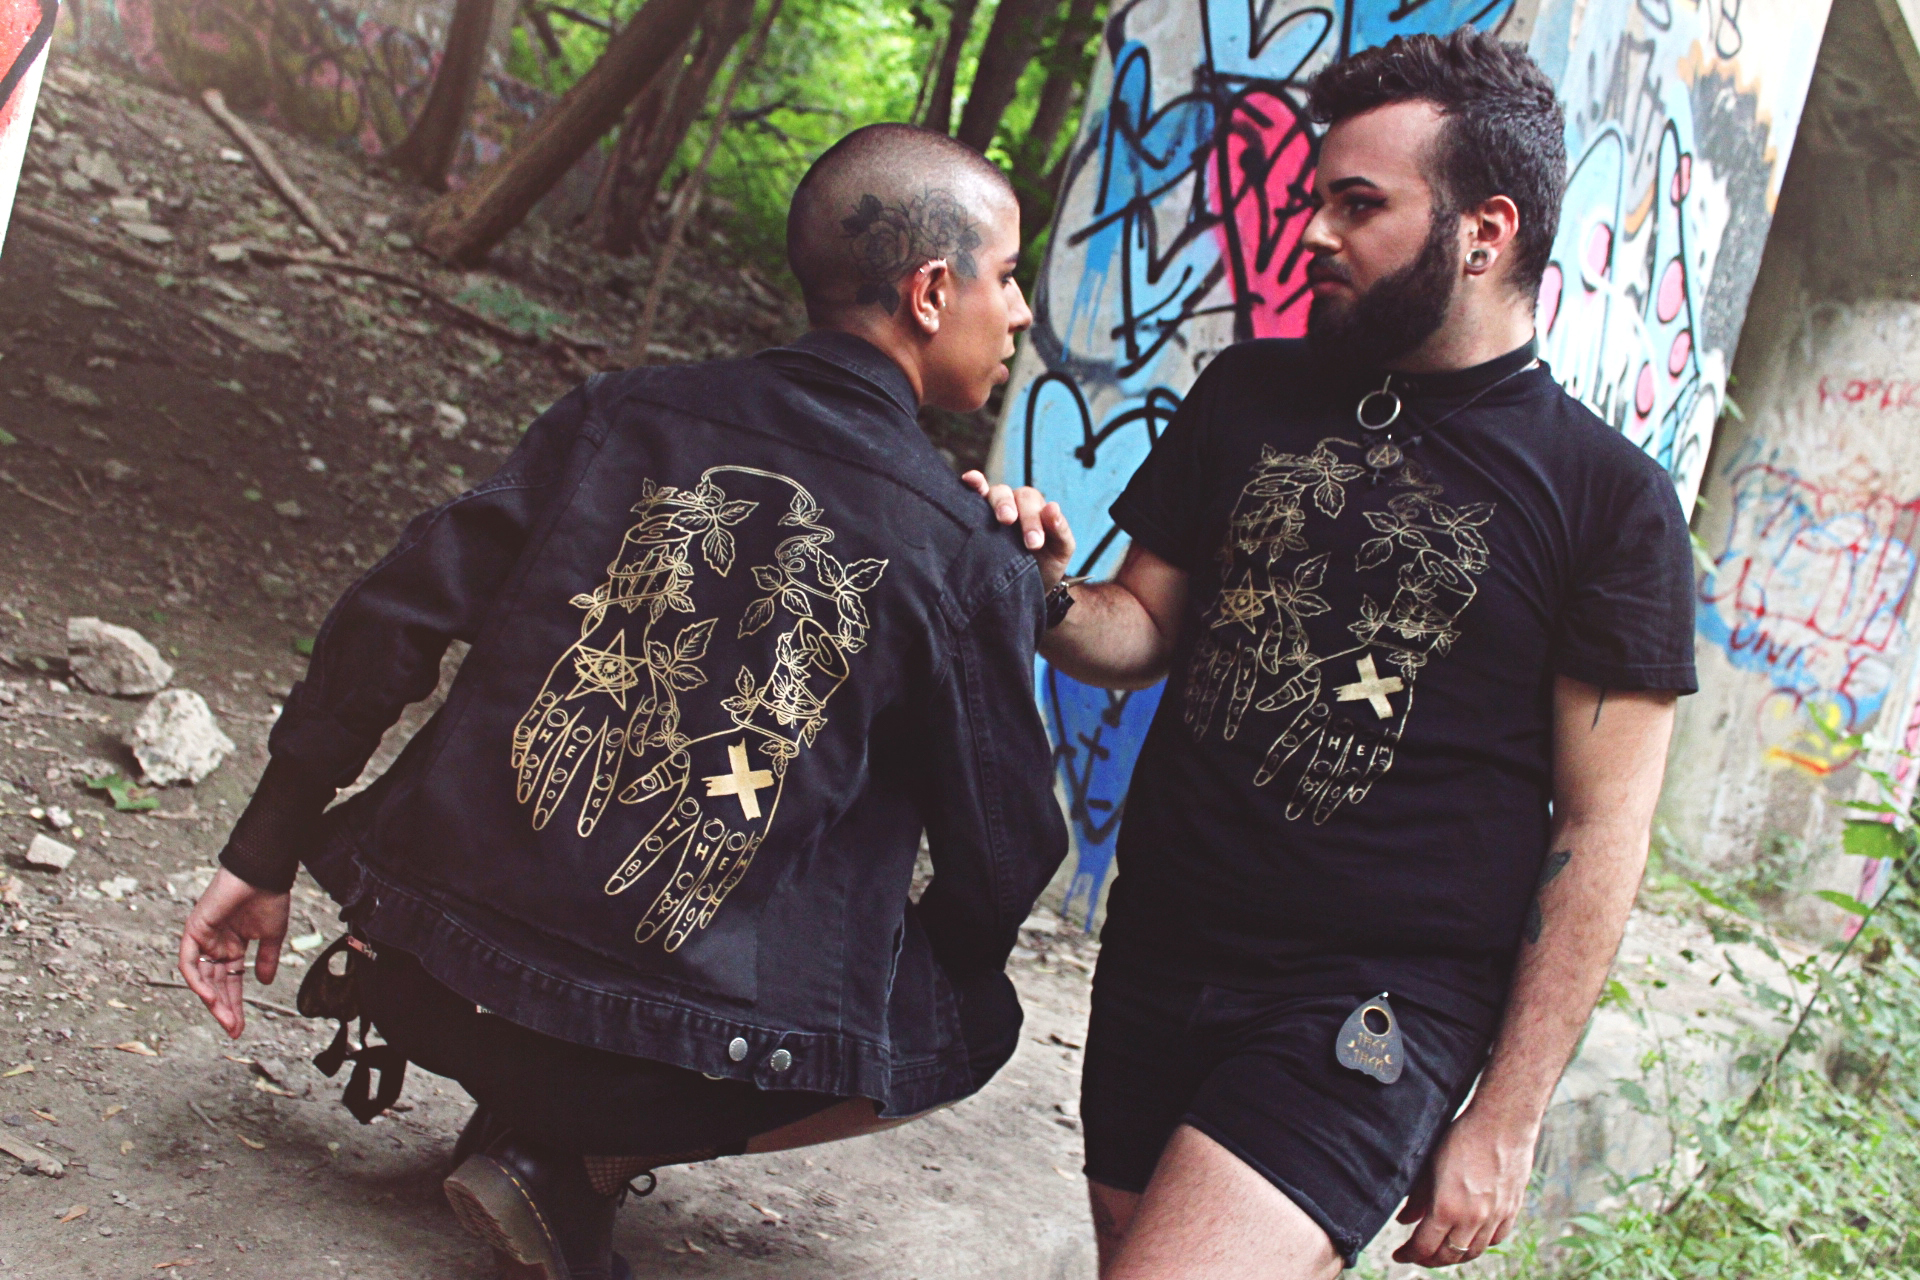 Image of one person crouched, their back showing a printed jacket, looking to the right at someone facing forward wearing a t-shirt with the same graphic